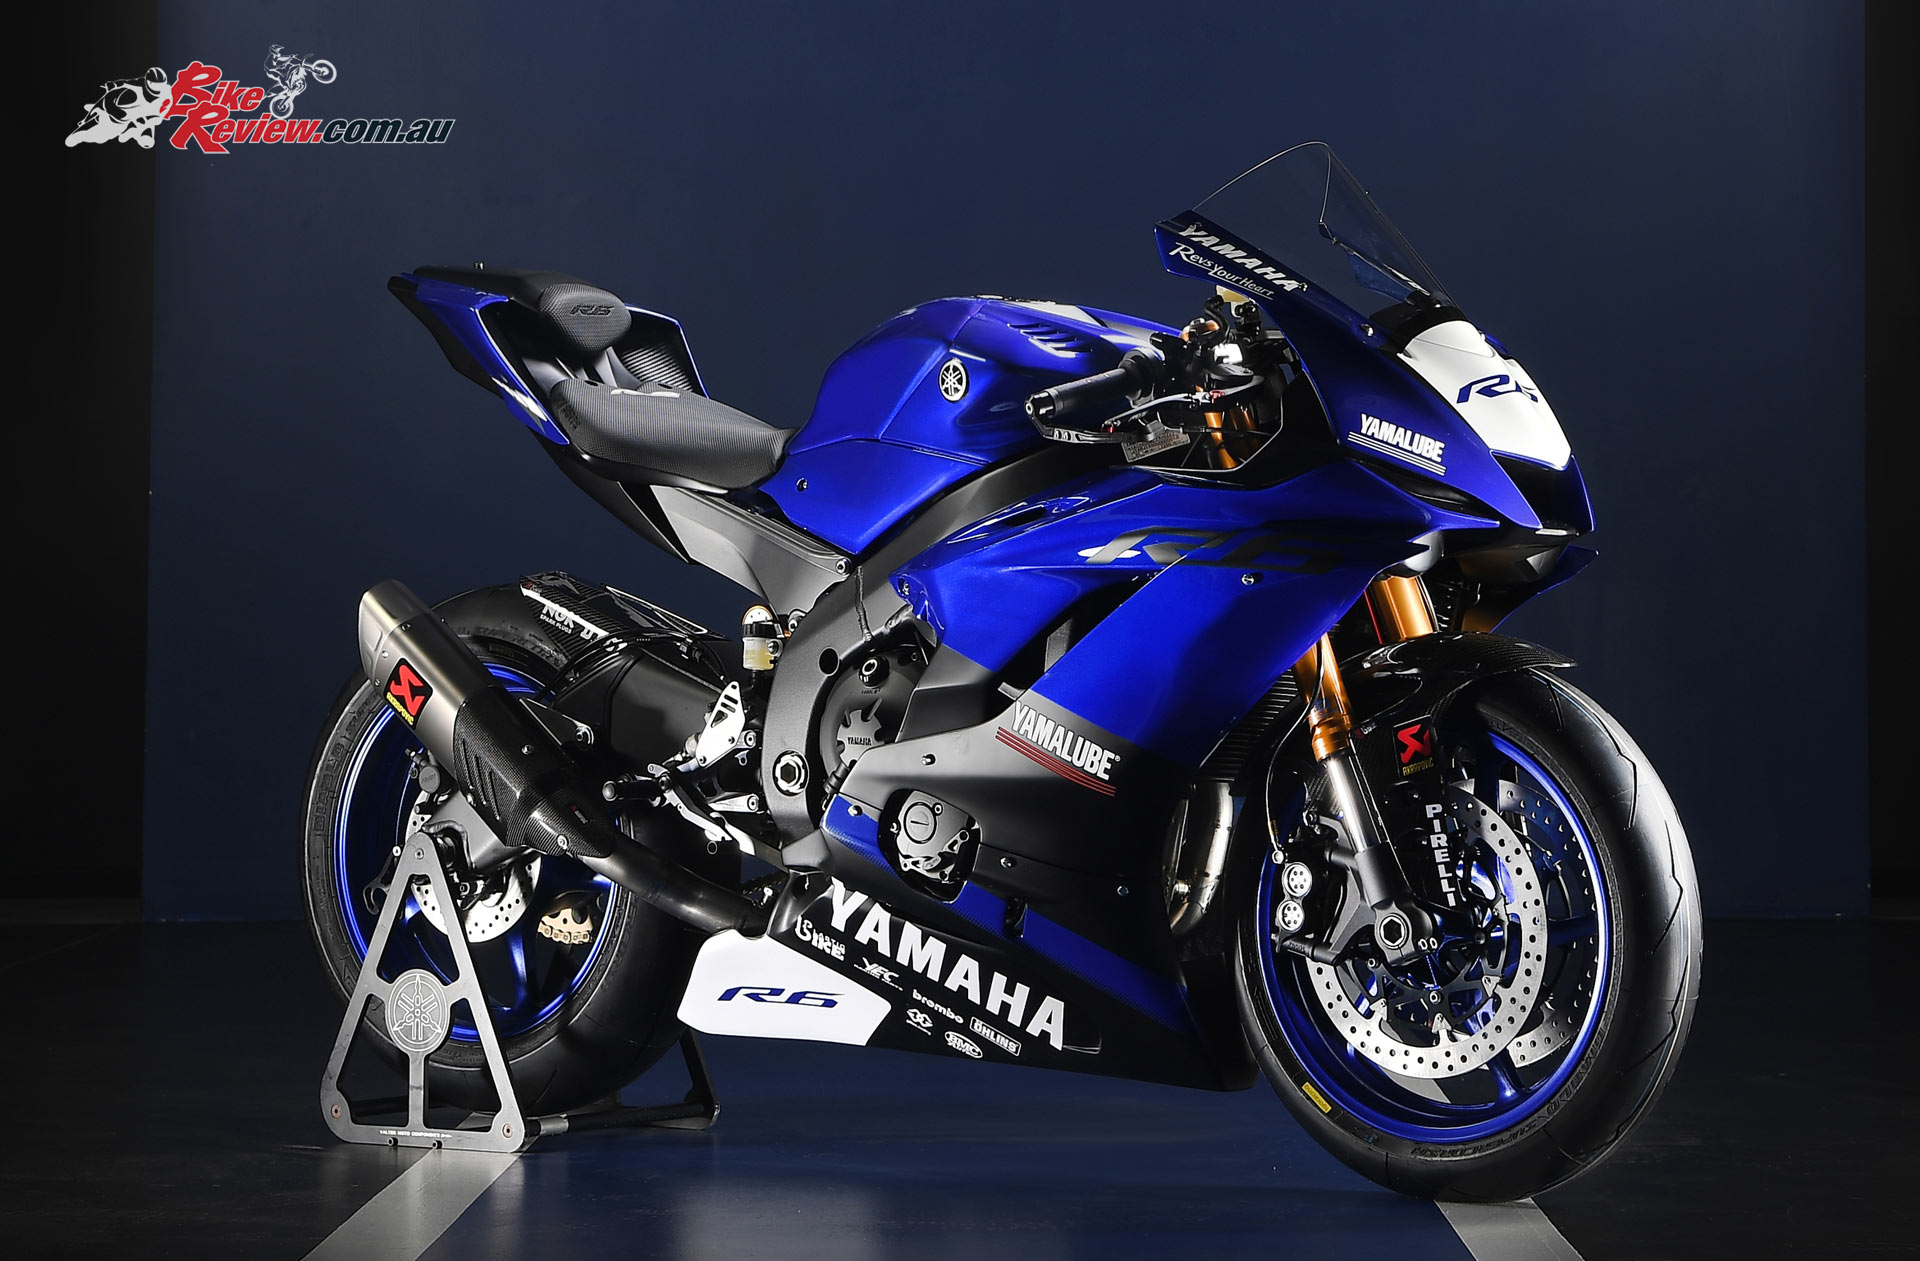 2017 Yamaha YZF-R6 'Racing Edition' - Bike Review